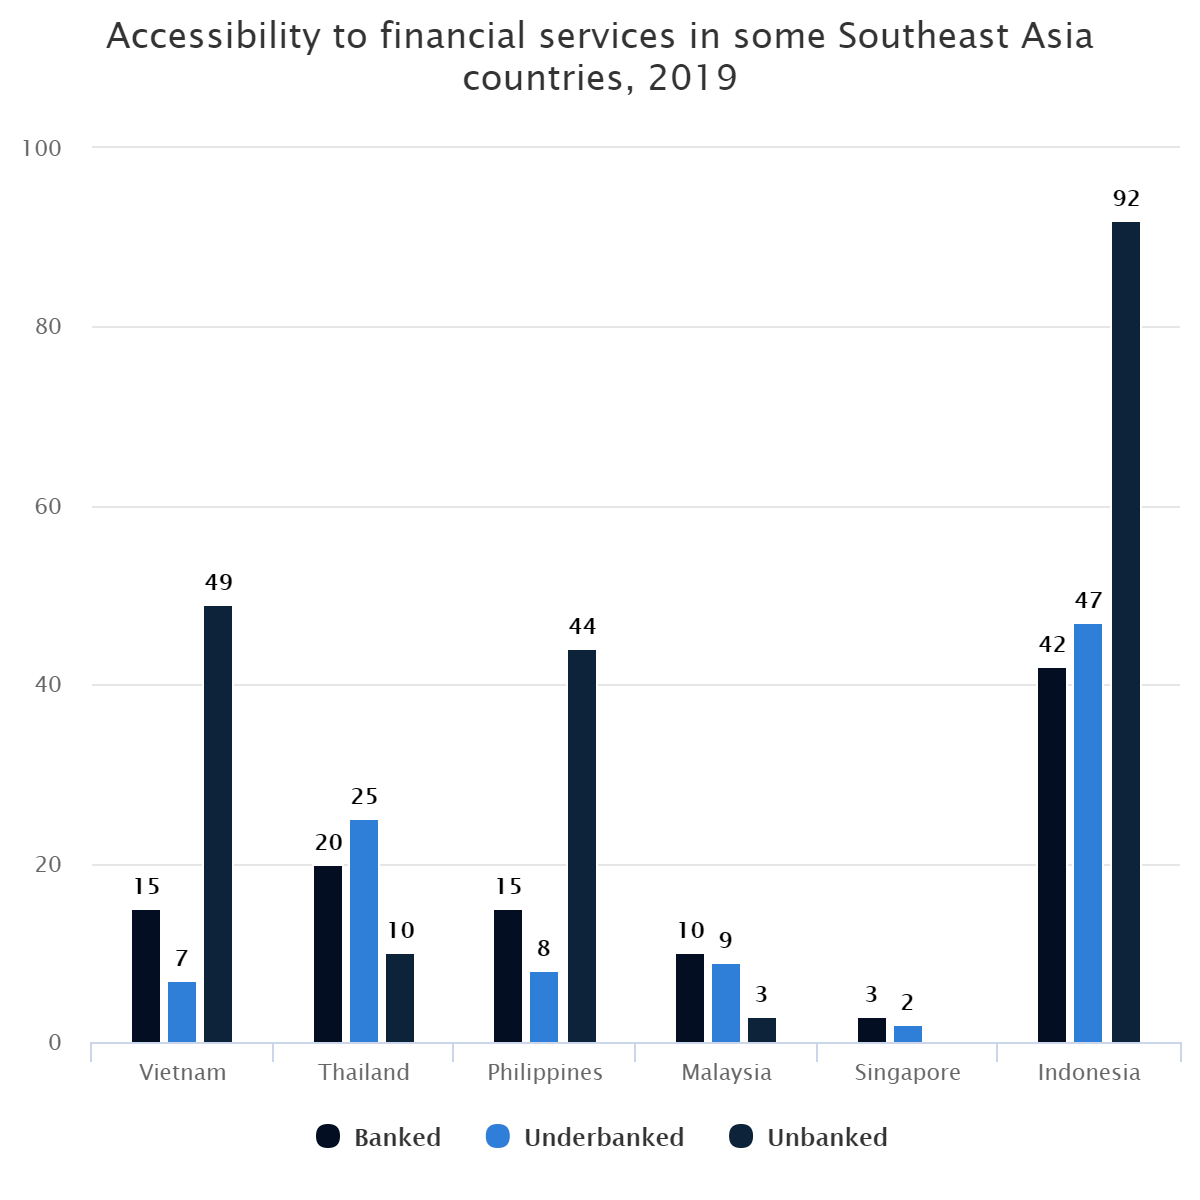 Accessibility to financial services in some Southeast Asia countries, 2019